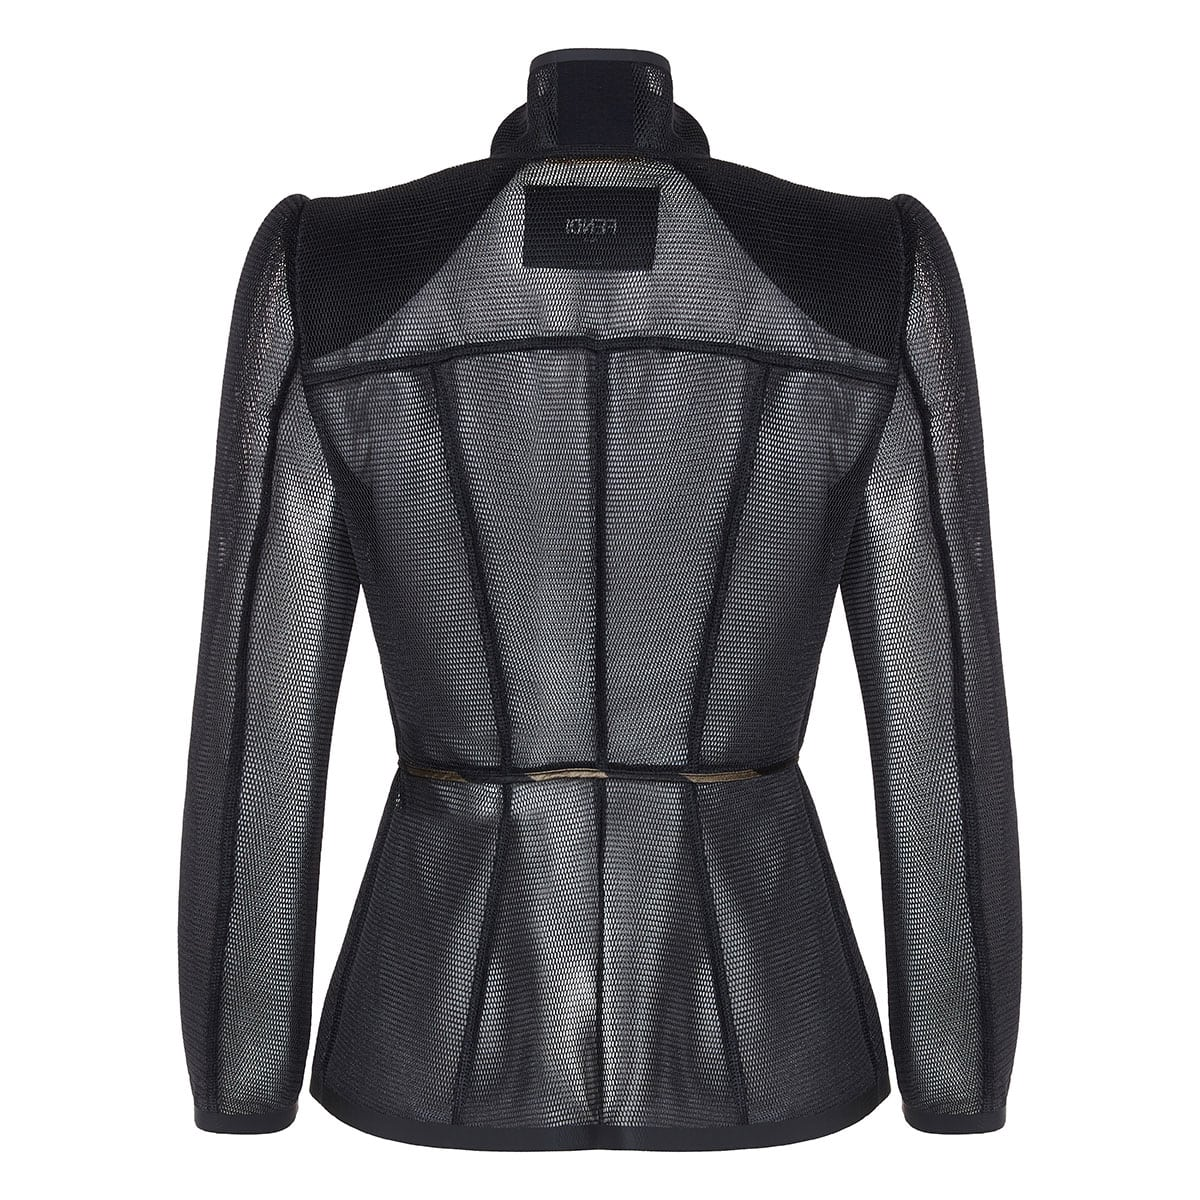 Structured micromesh peplum jacket